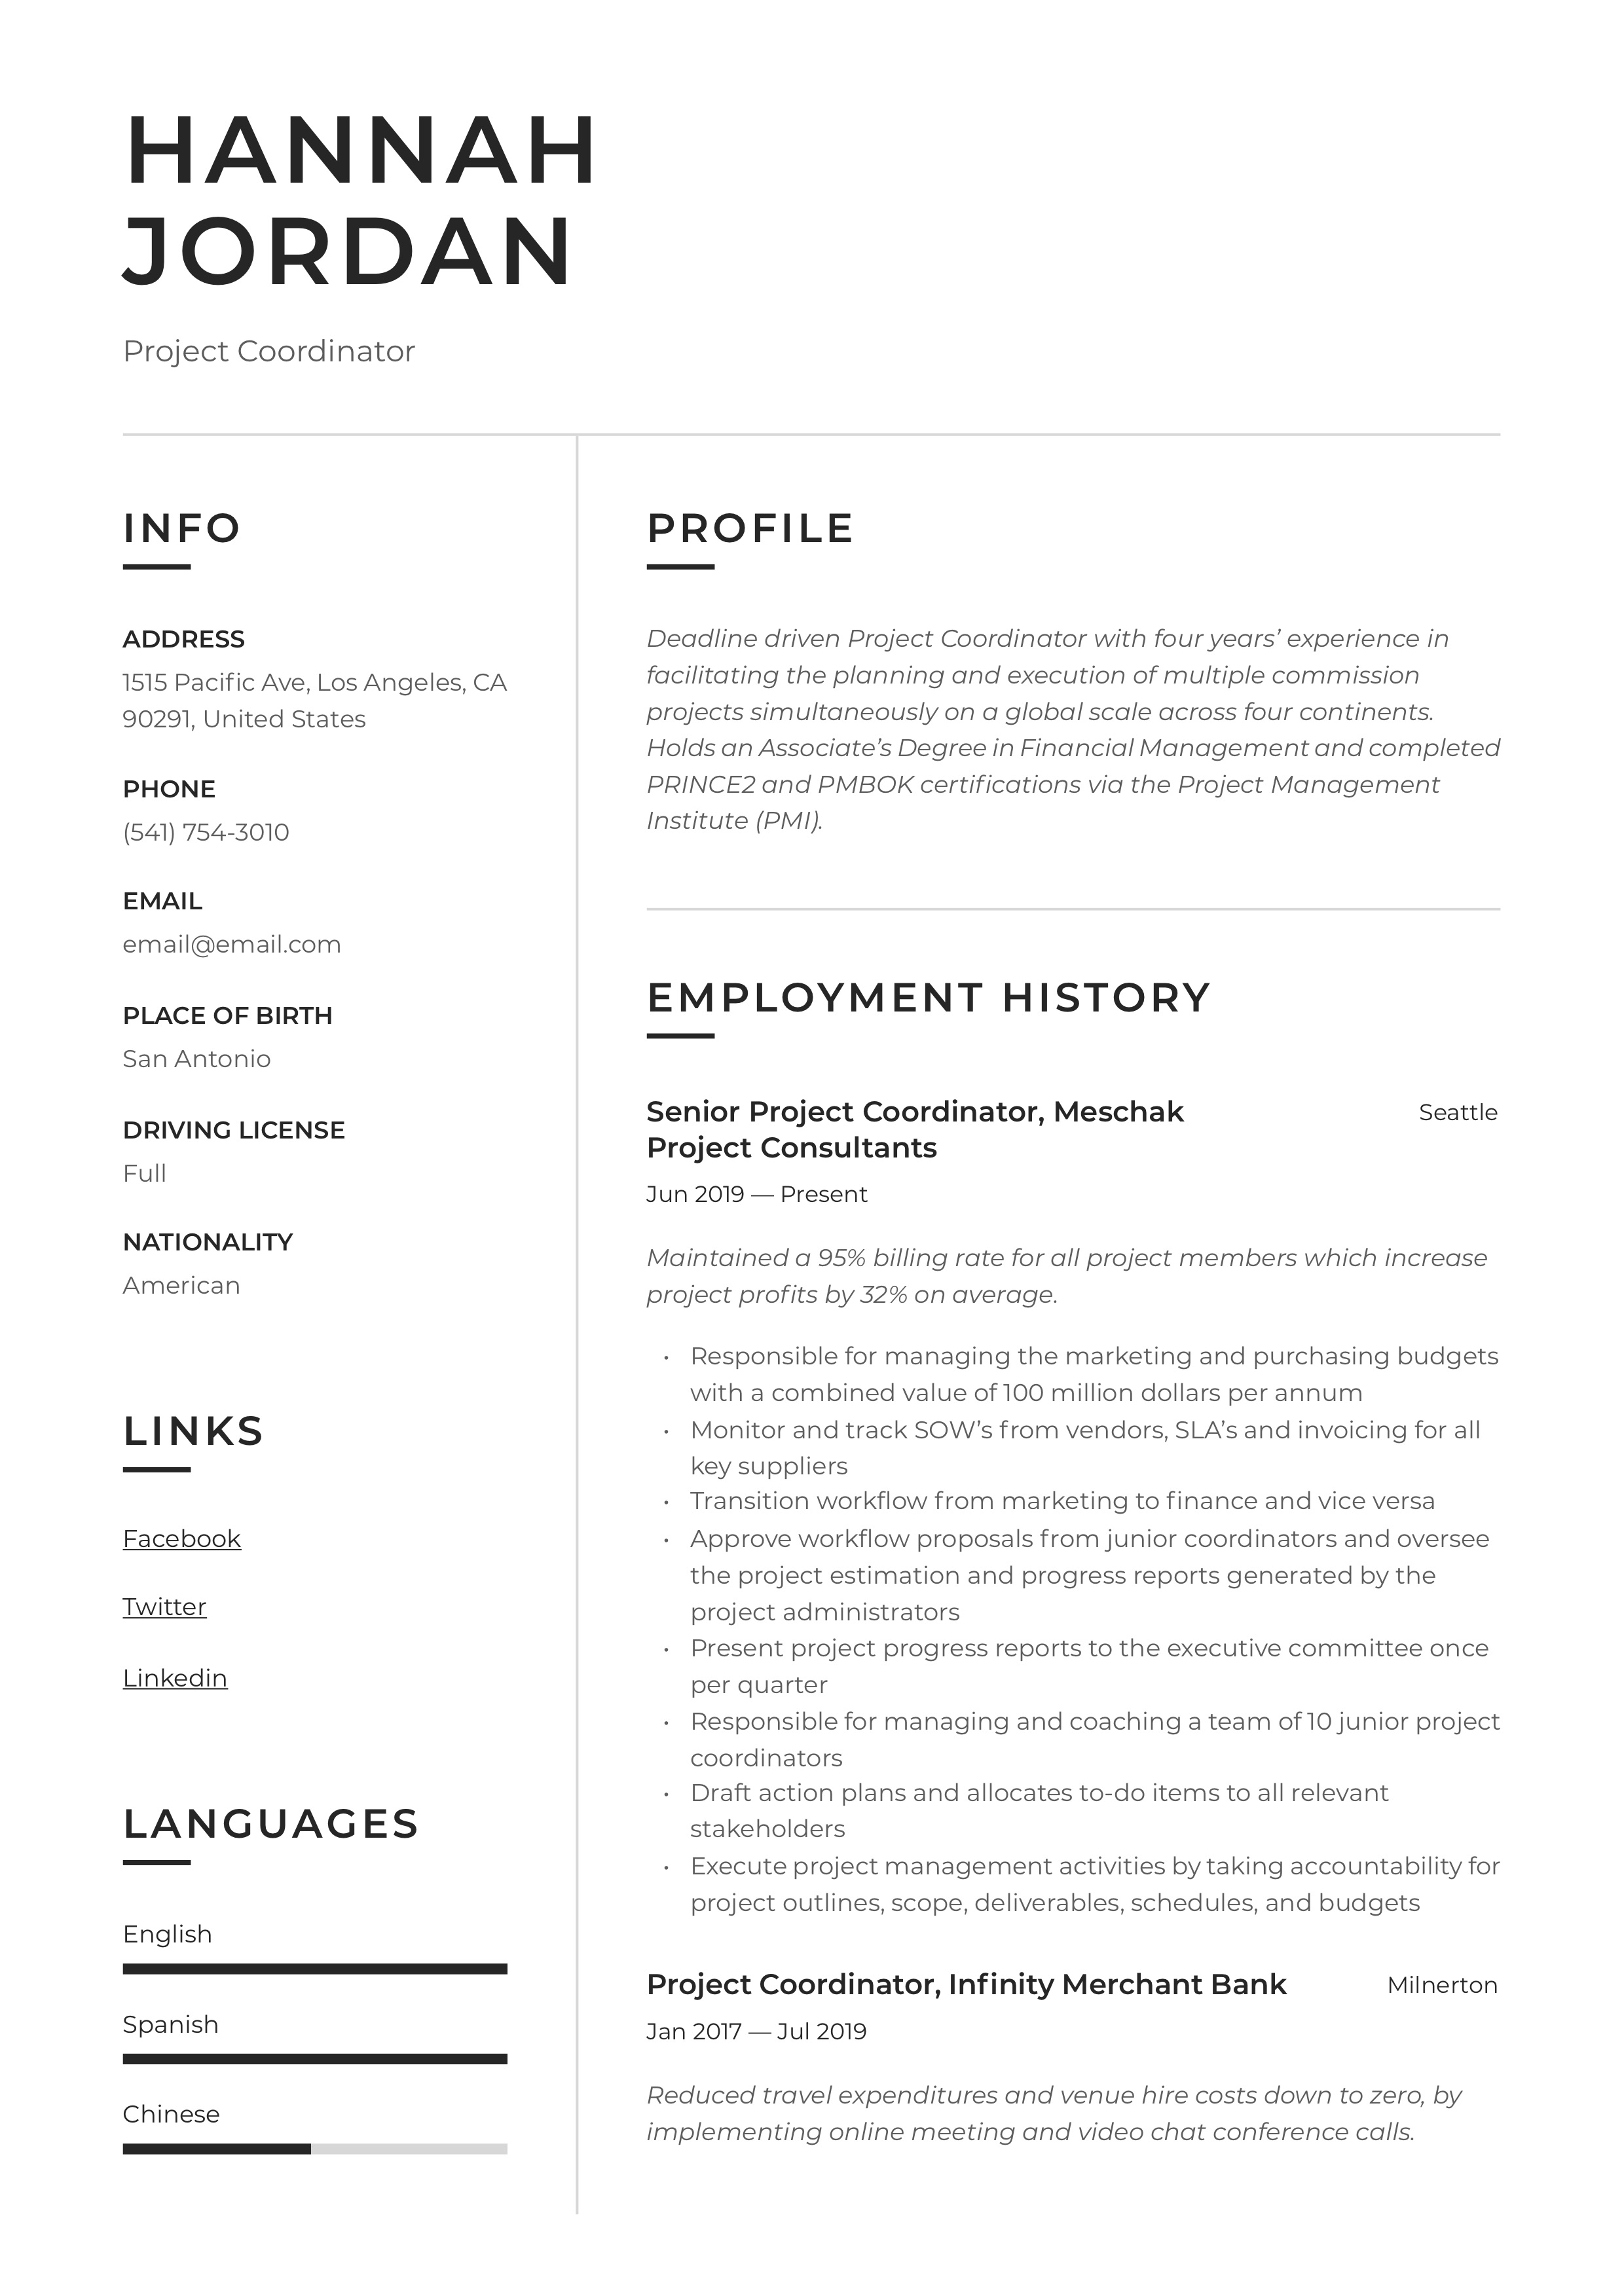 Project Coordinator Resume Writing Guide 12 Examples 2020